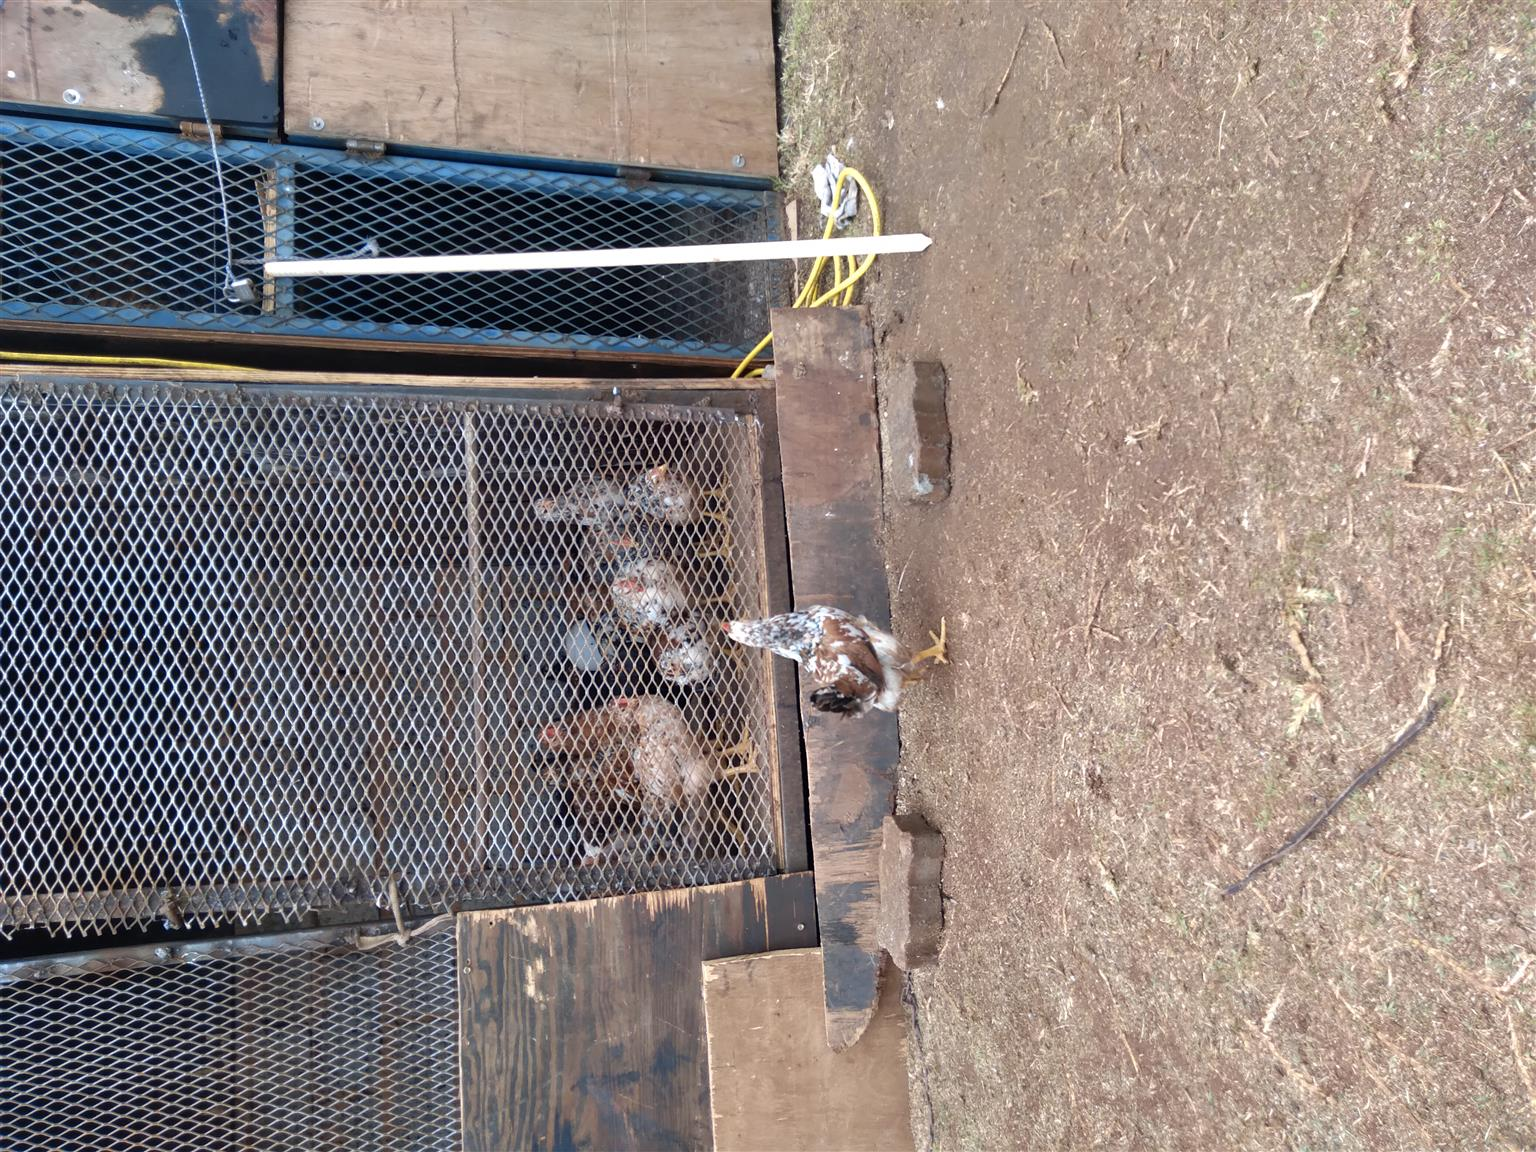 Selling Boschvelder chickens 2-8wks old. All chickens ready from 12 weeks old.